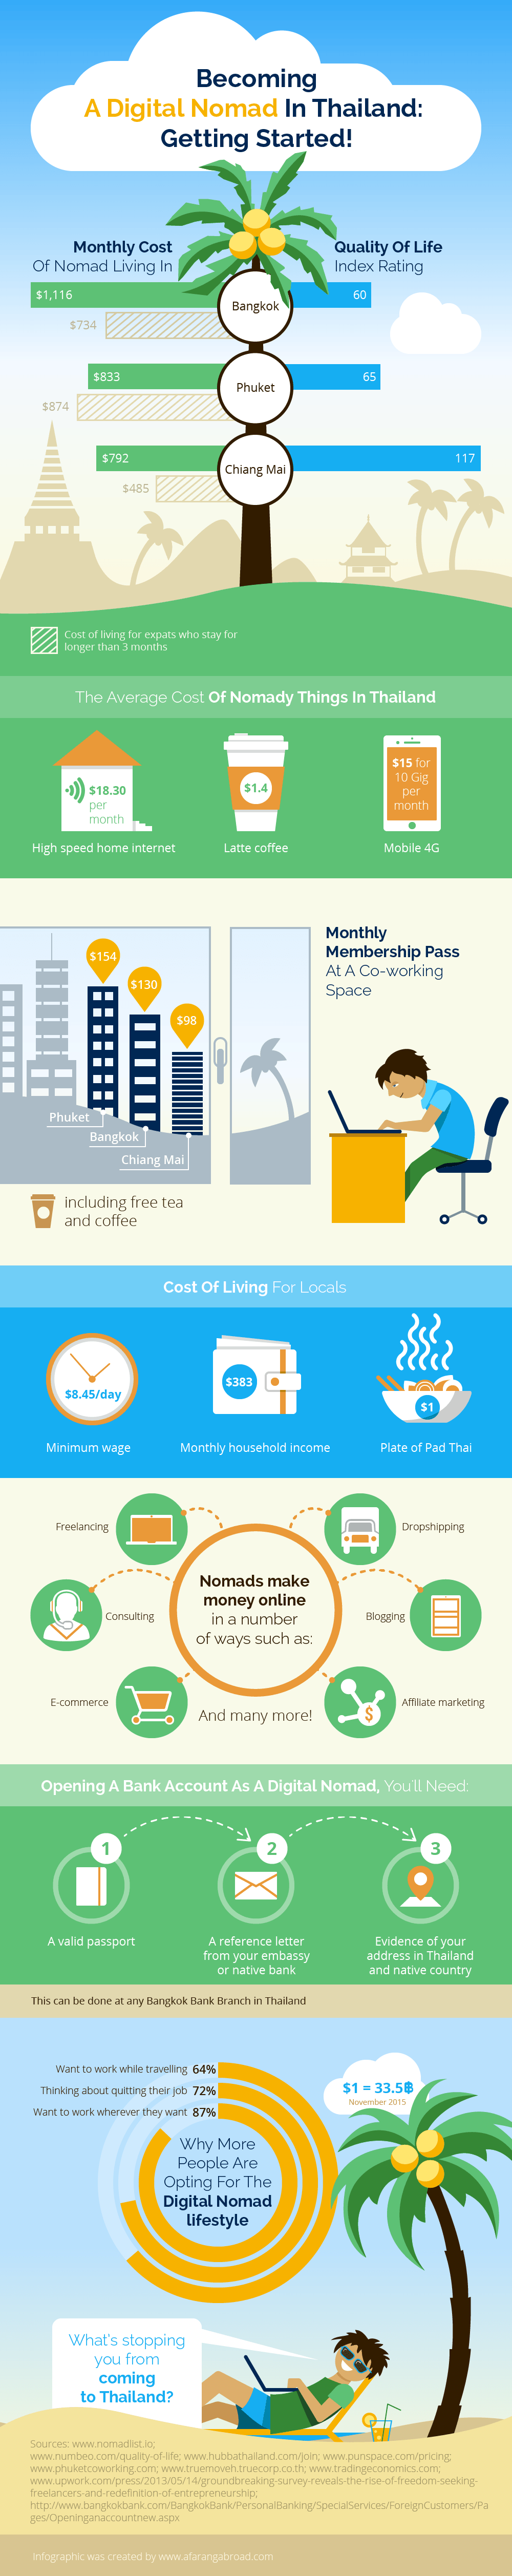 Digital nomad in Thailand, Getting Started As A Digital Nomad In Thailand